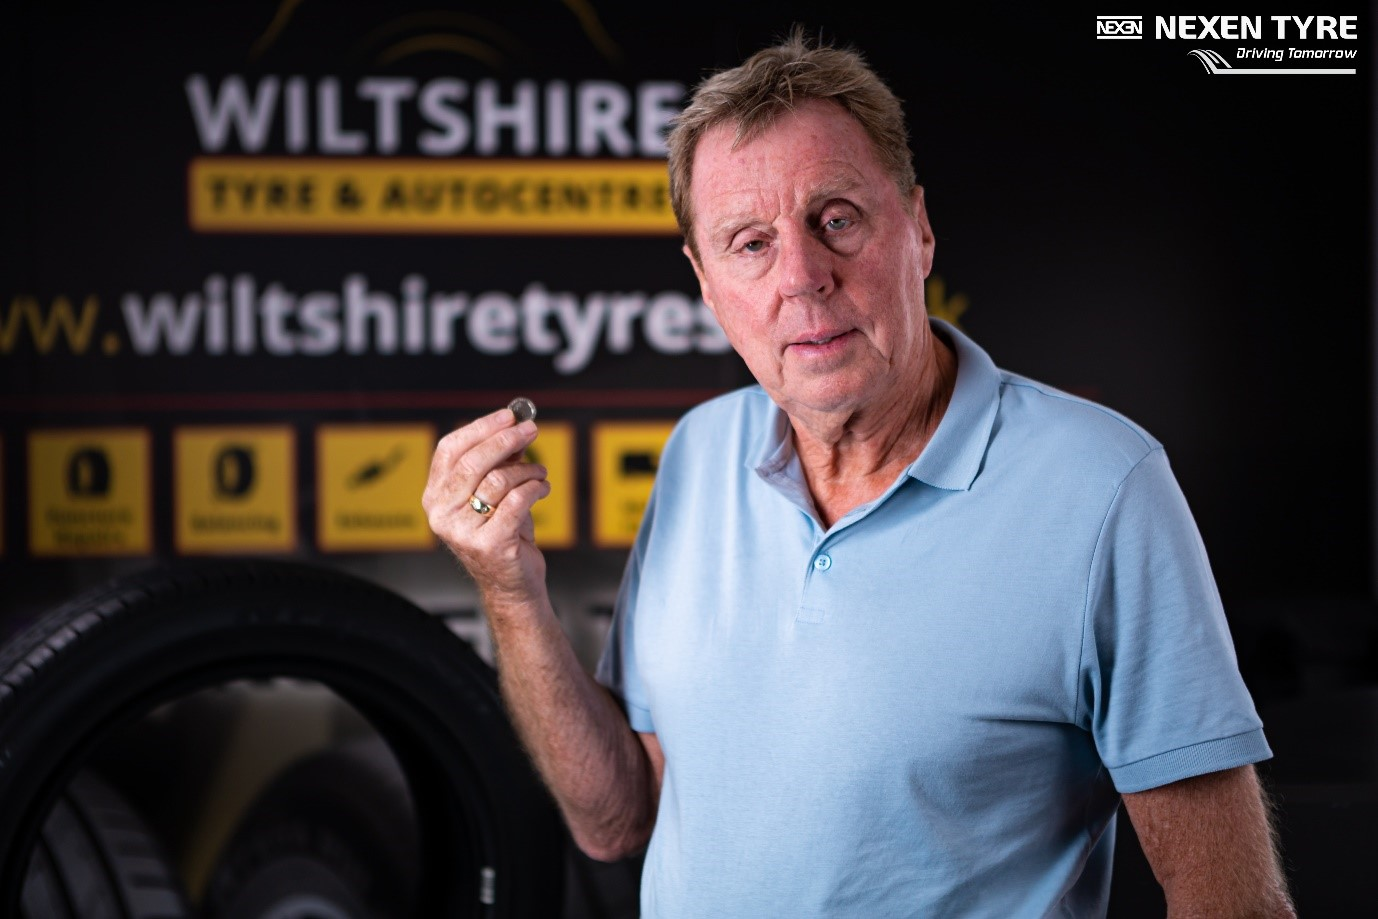 Harry Redknapp learns Tyre Safety tricks